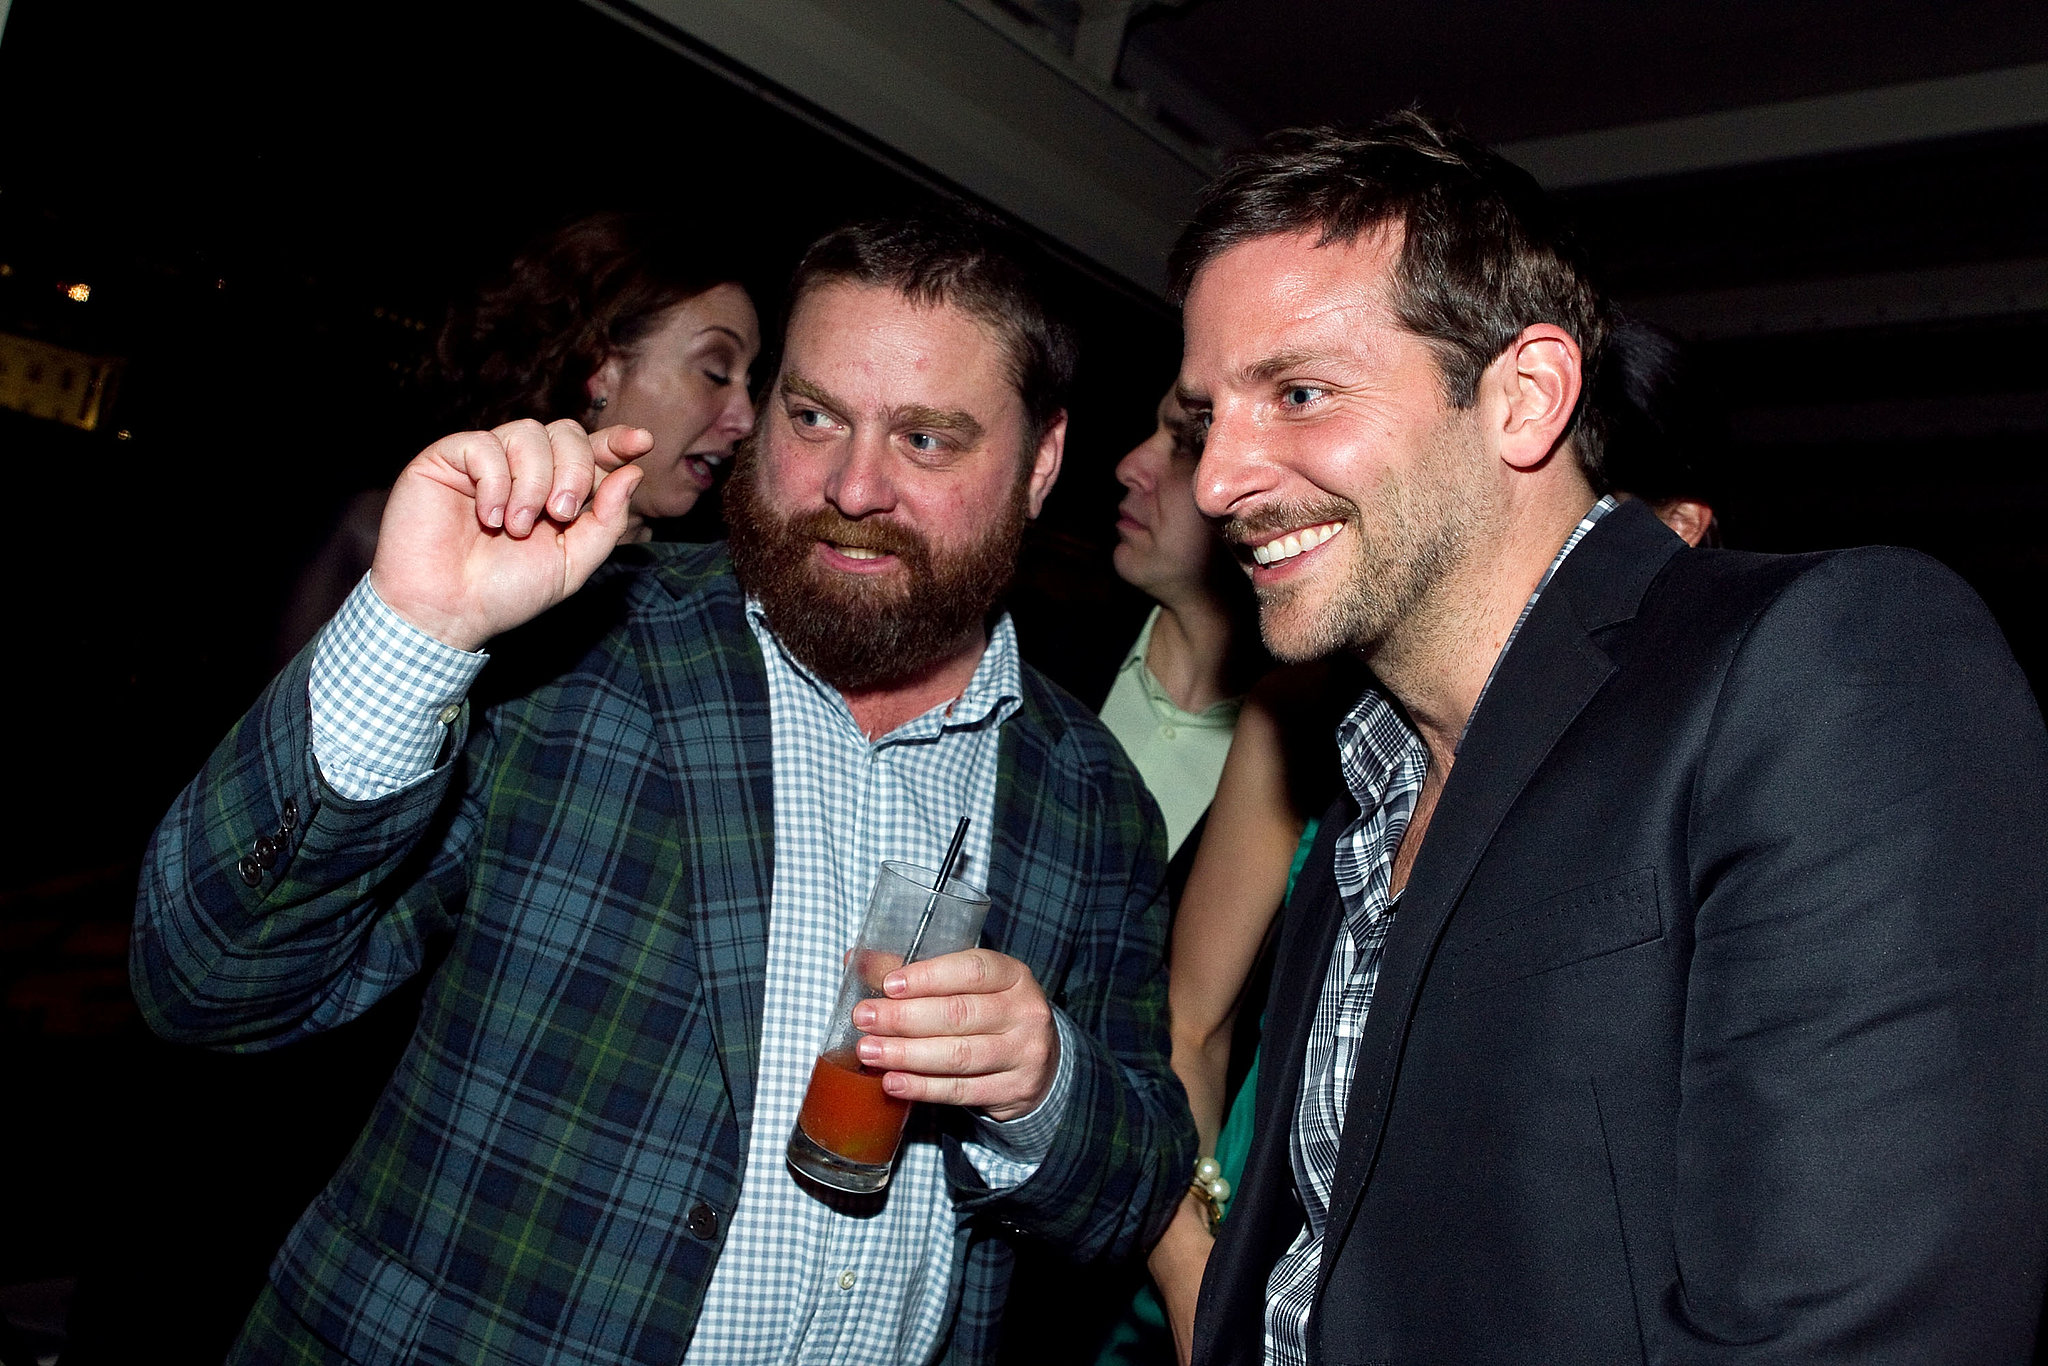 Zach Galifianakis and Bradley Cooper were friends long before they starred together in The Hangover. Bradley even made an appearance on Zach's short-lived VH1 talk show, Late World, back in 2002 and was one of the first stars to appear on his Funny or Die Between Two Ferns series.